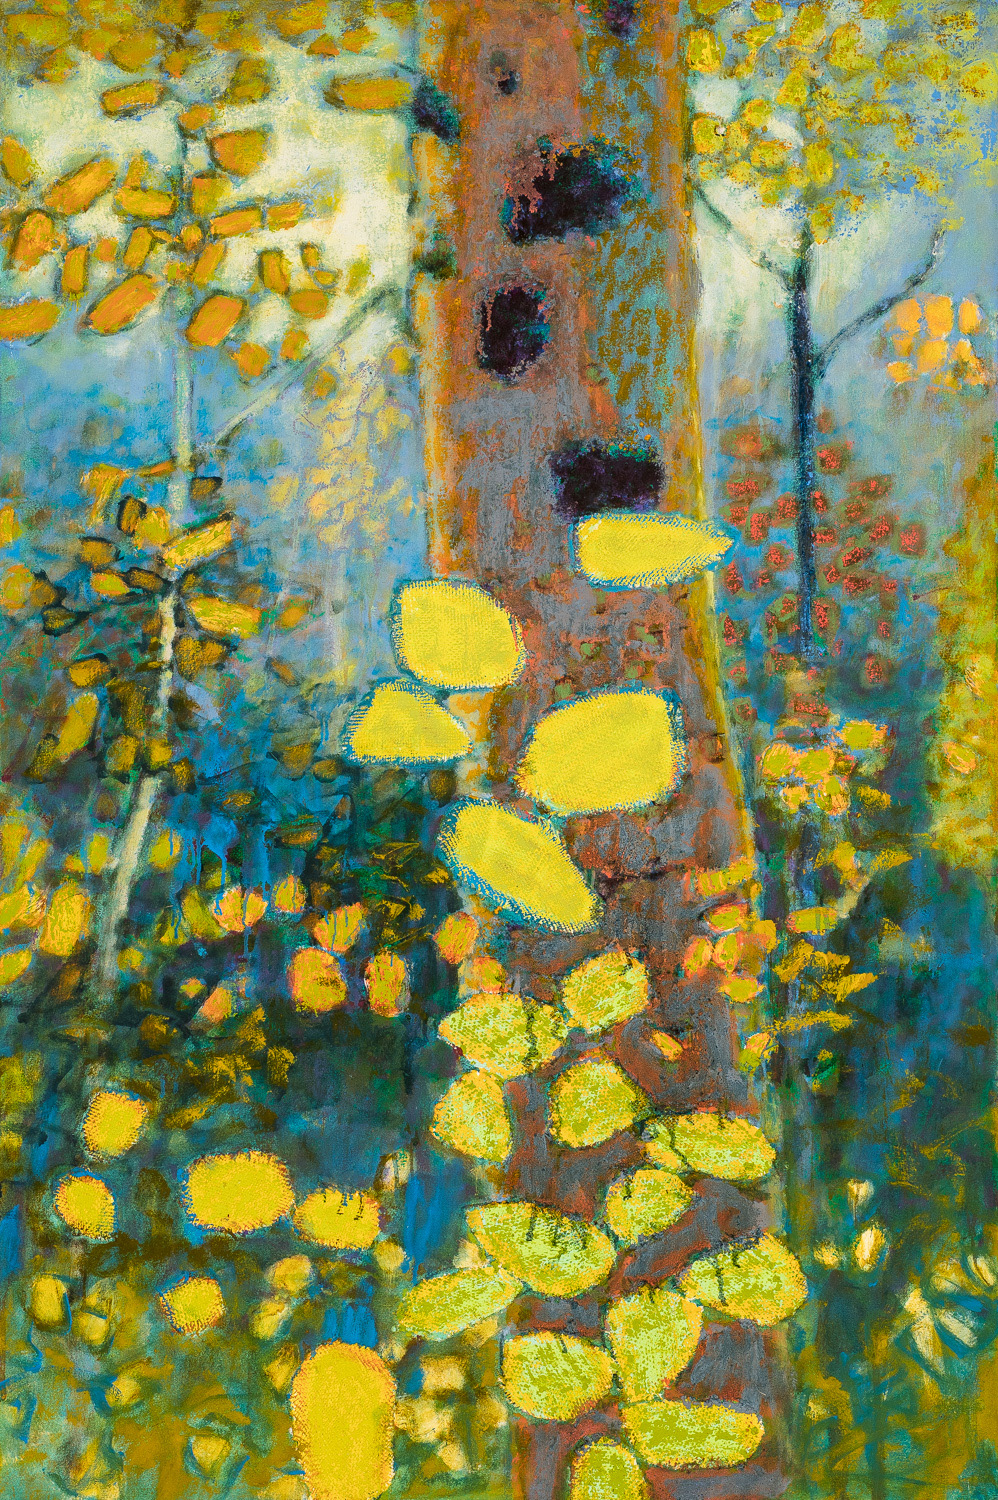 Rhapsody in Blue and Yellow  | oil on canvas | 48 x 32"